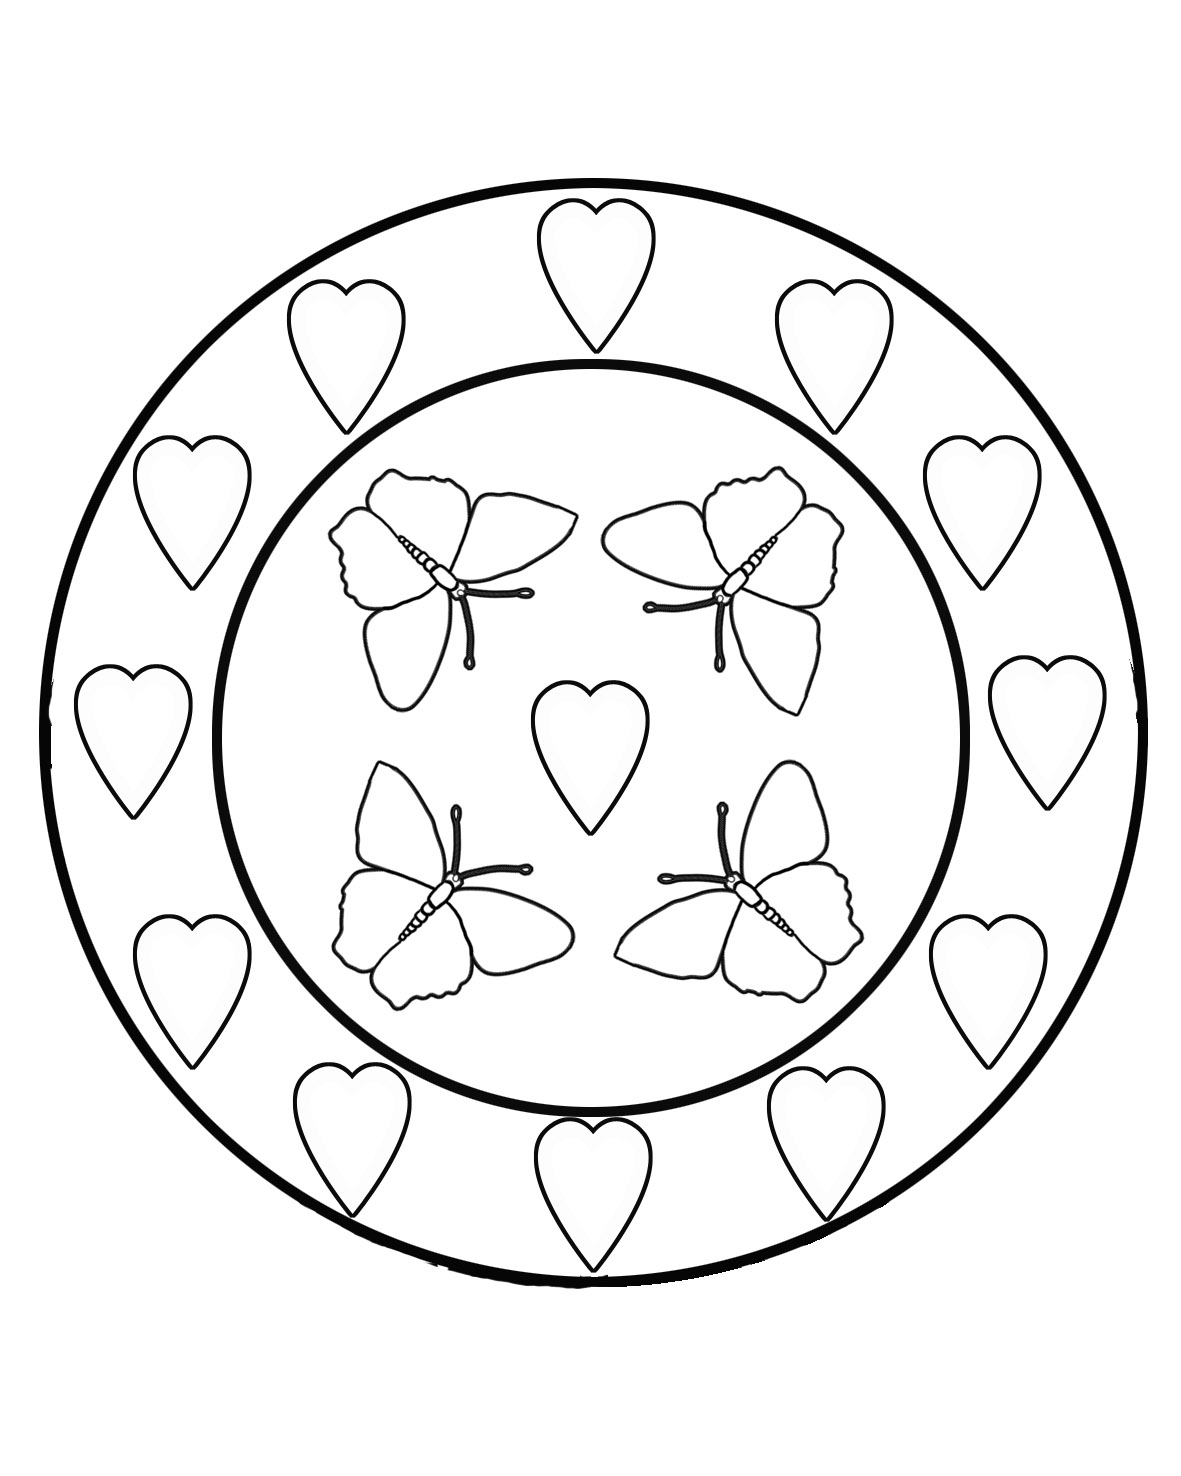 butterfly coloring pages with hearts